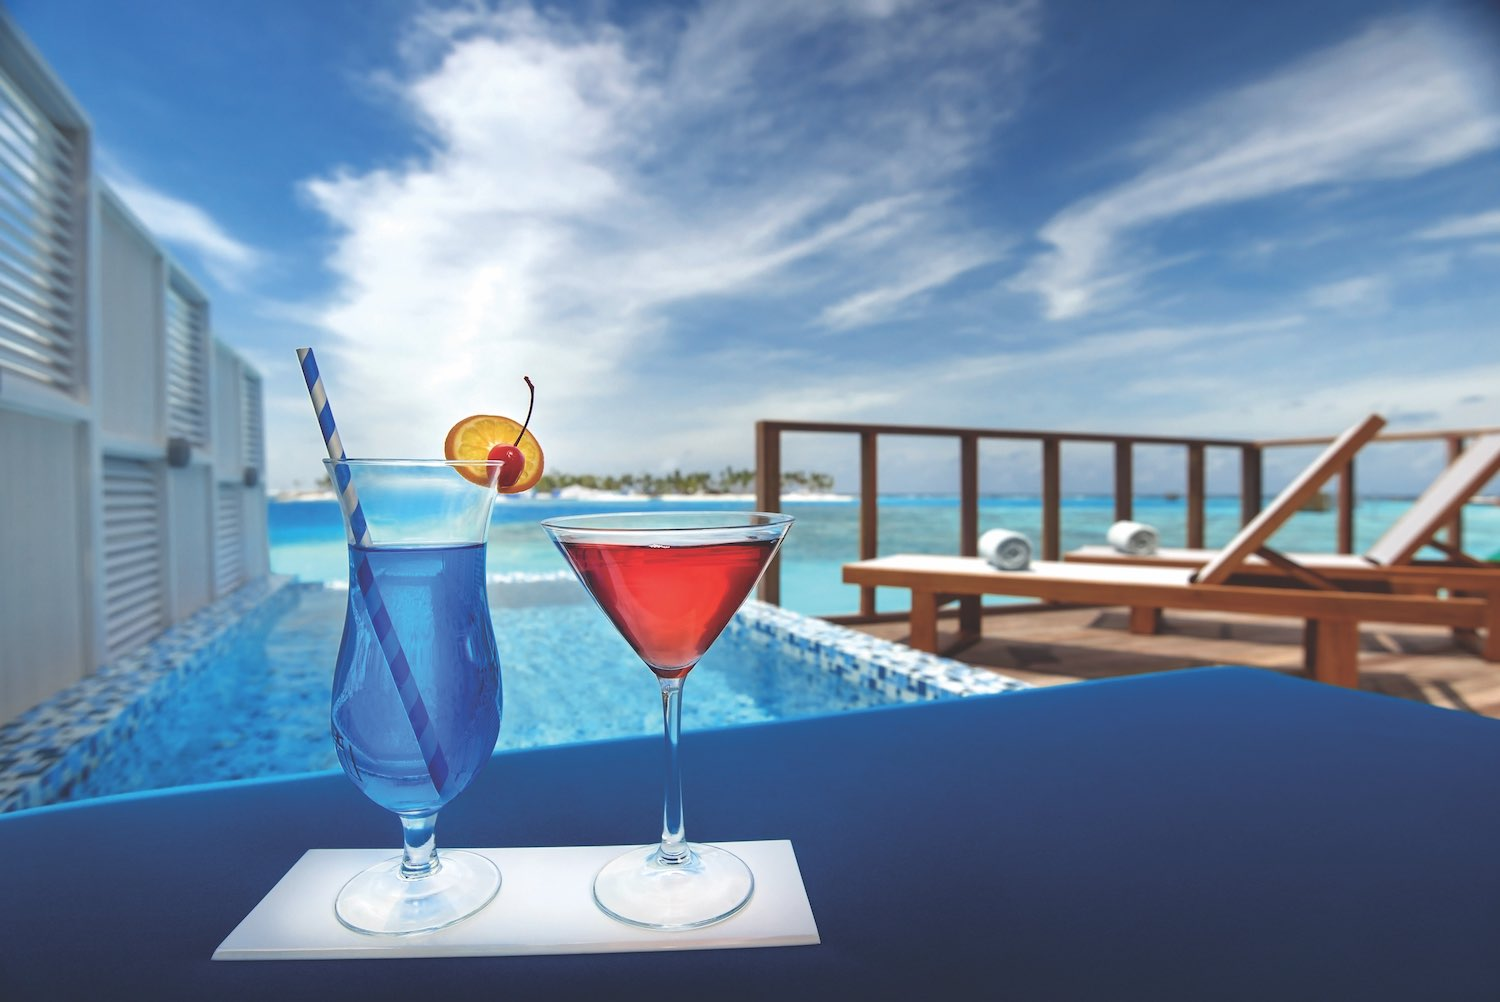 maldives-oblu-select-at-sangeli-deluxe-water-villa-with-pool-3-holiday-honeymoon-vacation-invite-to-paradise.jpg